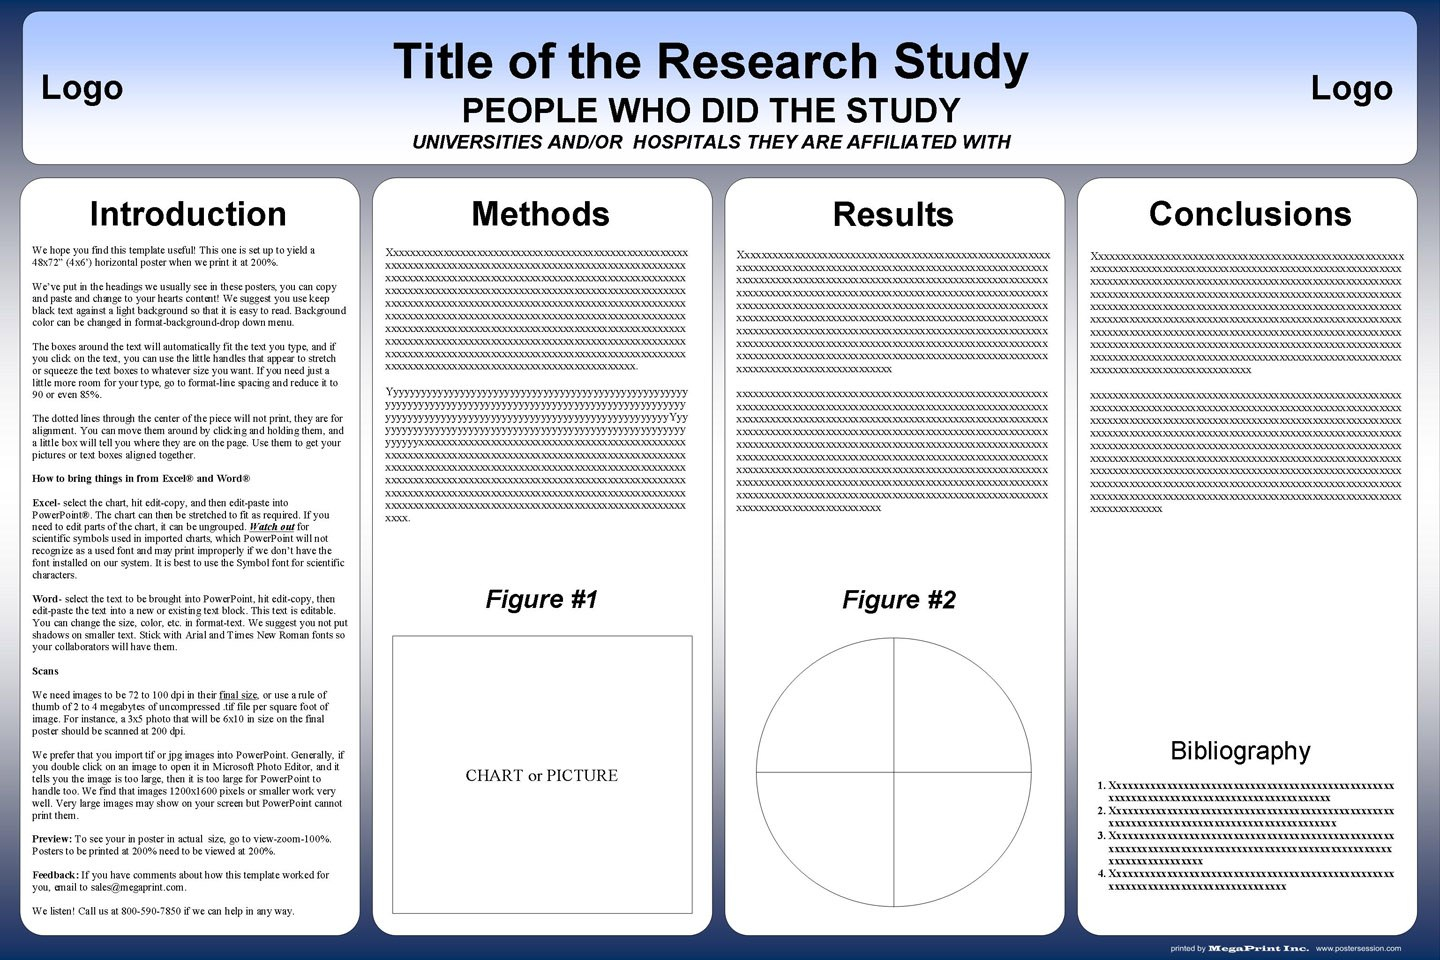 Free Powerpoint Scientific Research Poster Templates For Printing Inside Powerpoint Poster Template A0